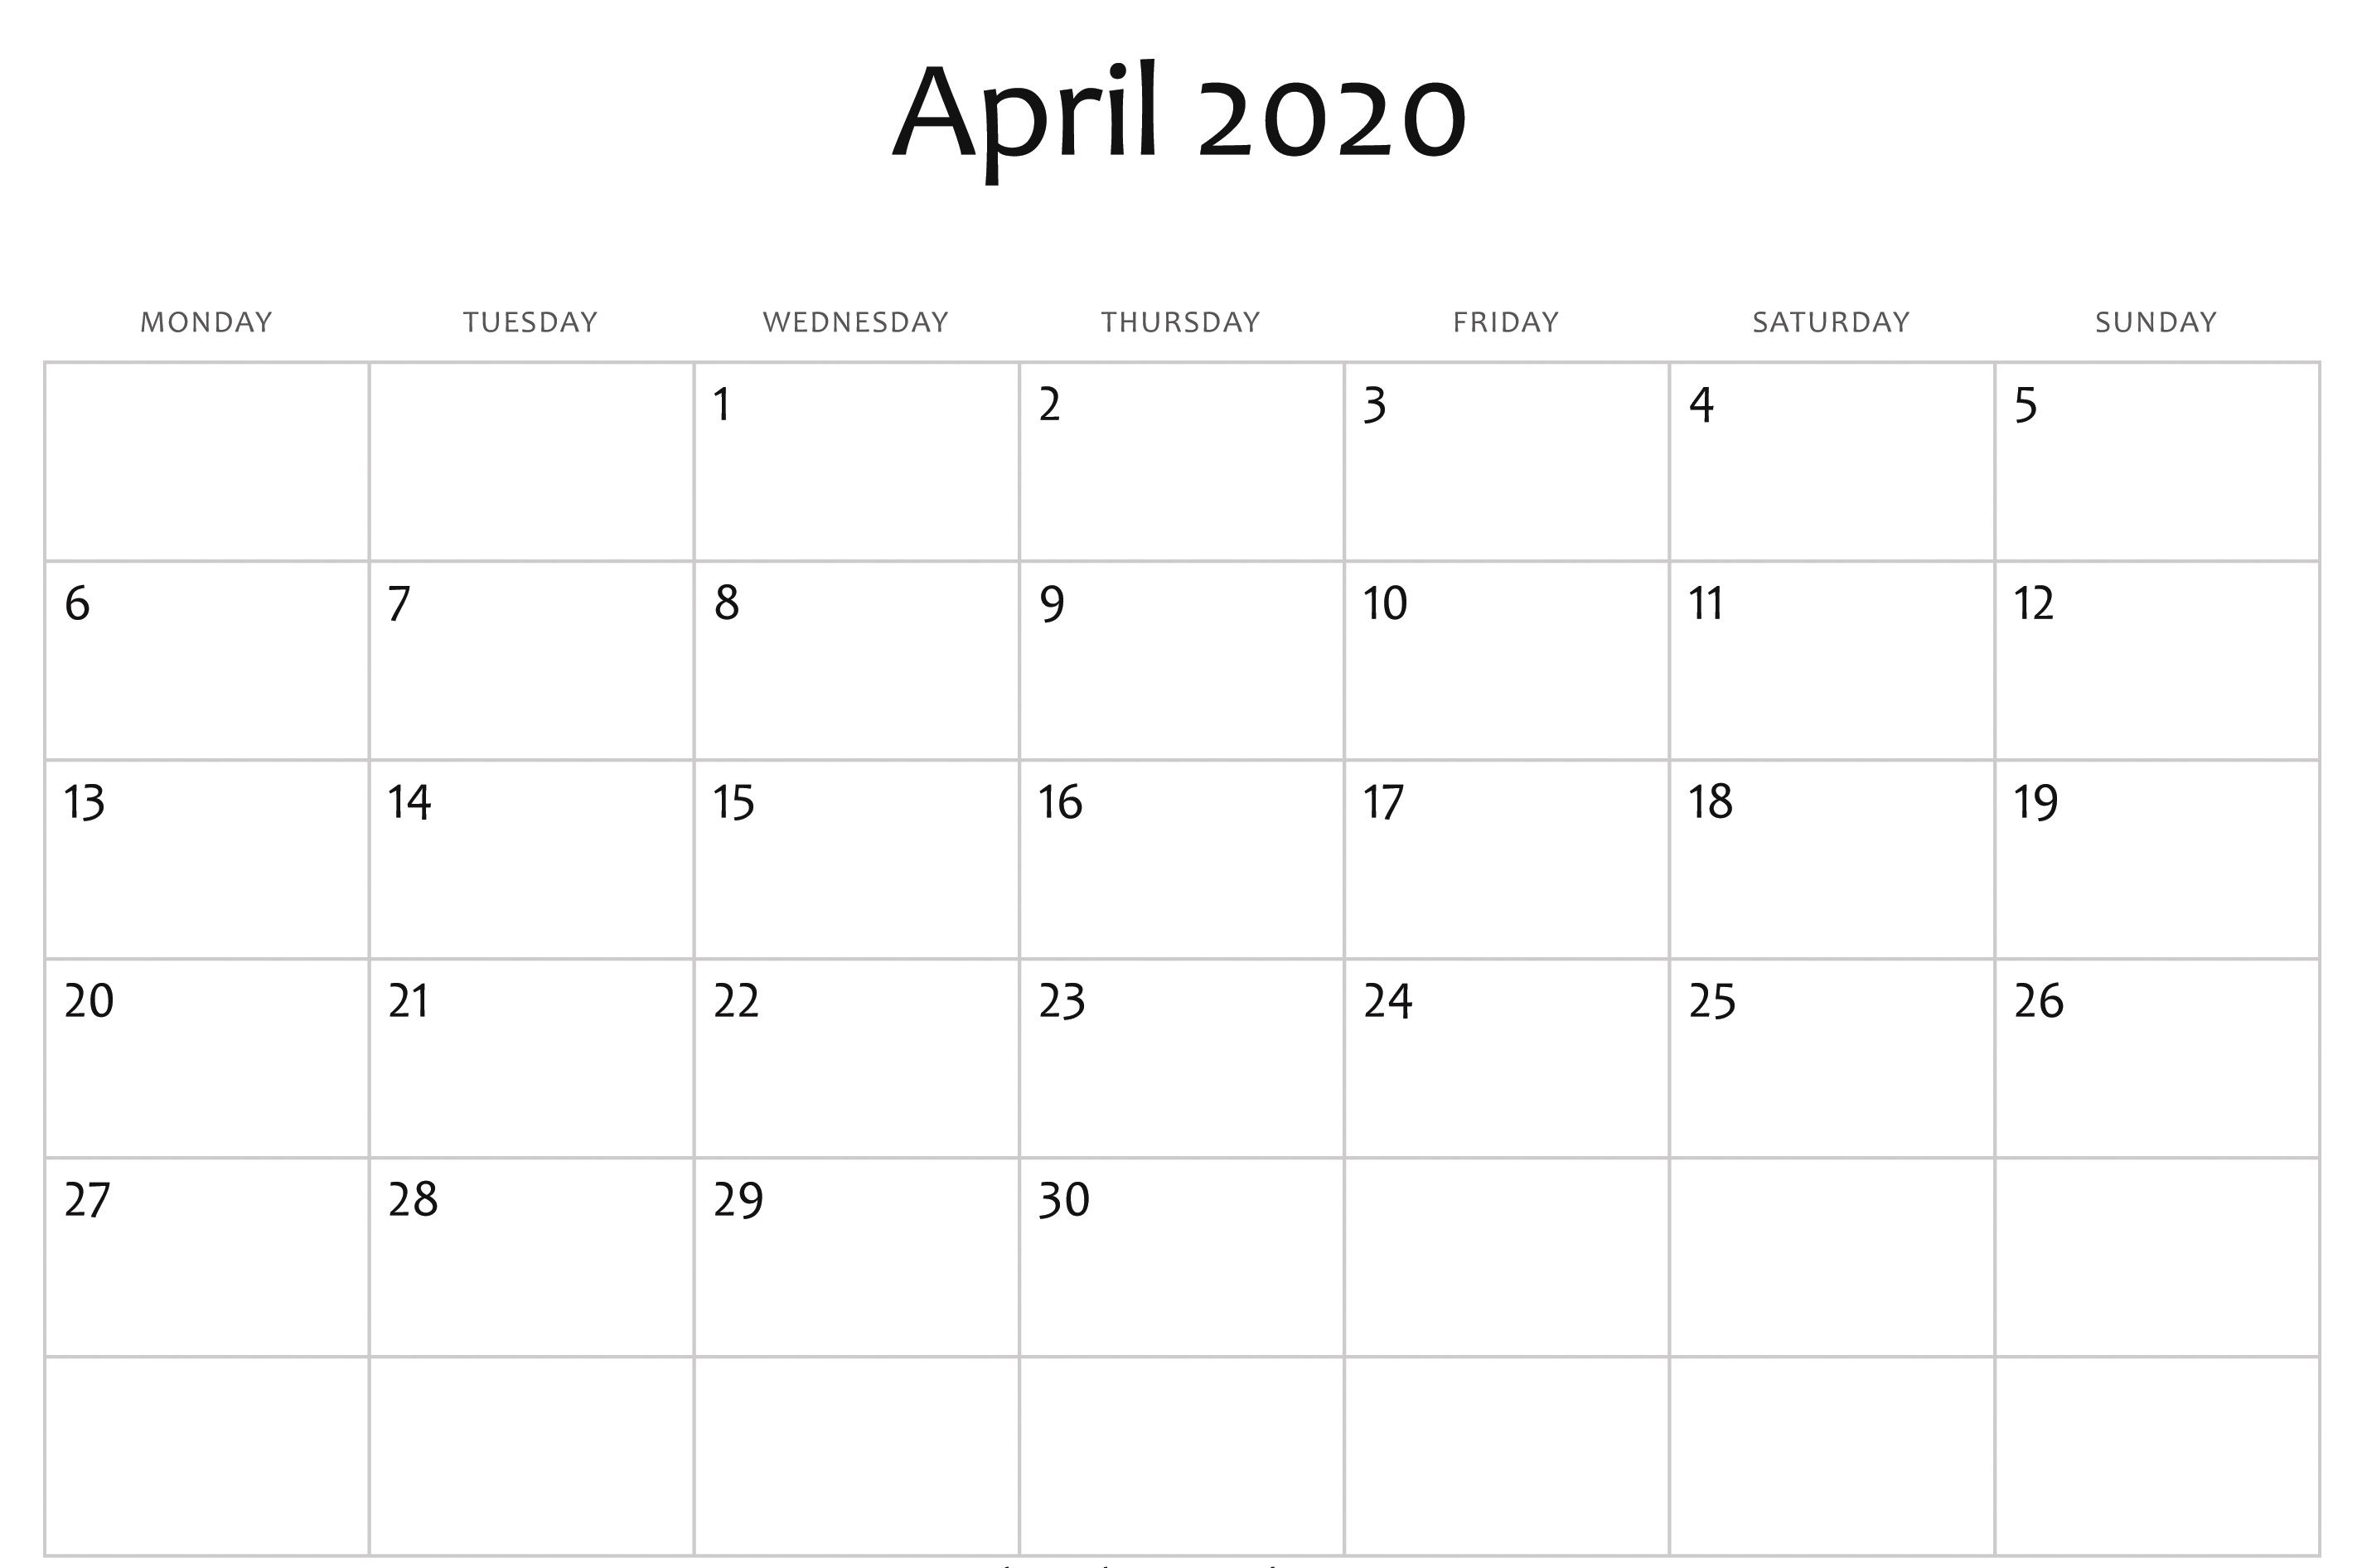 004 Fearsome Calendar 2020 Template Word Image  Monthly Doc Free DownloadFull